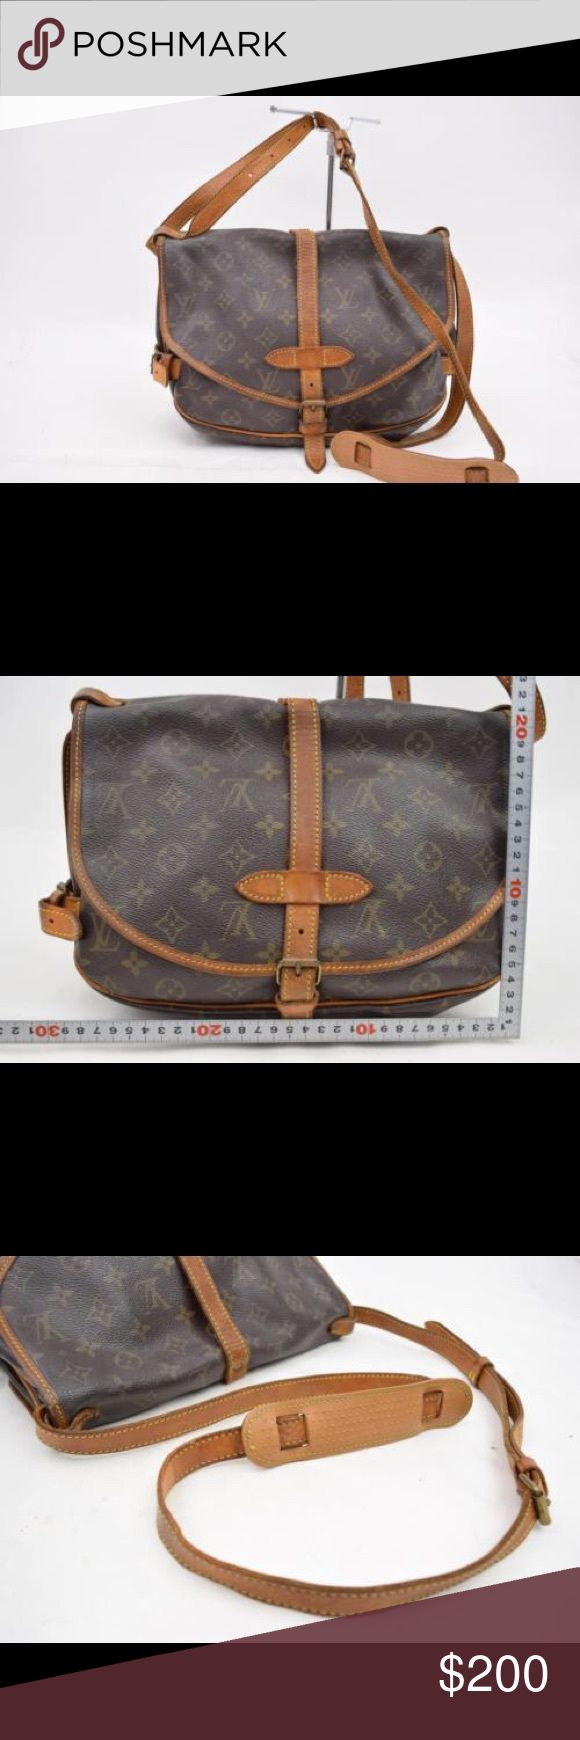 Louis Vuitton Saumur 30 Pre Owned Louis Vuitton Saumur 30. Date Code is AR1912 made in France will go lower $$$ off site. Louis Vuitton Bags Crossbody Bags